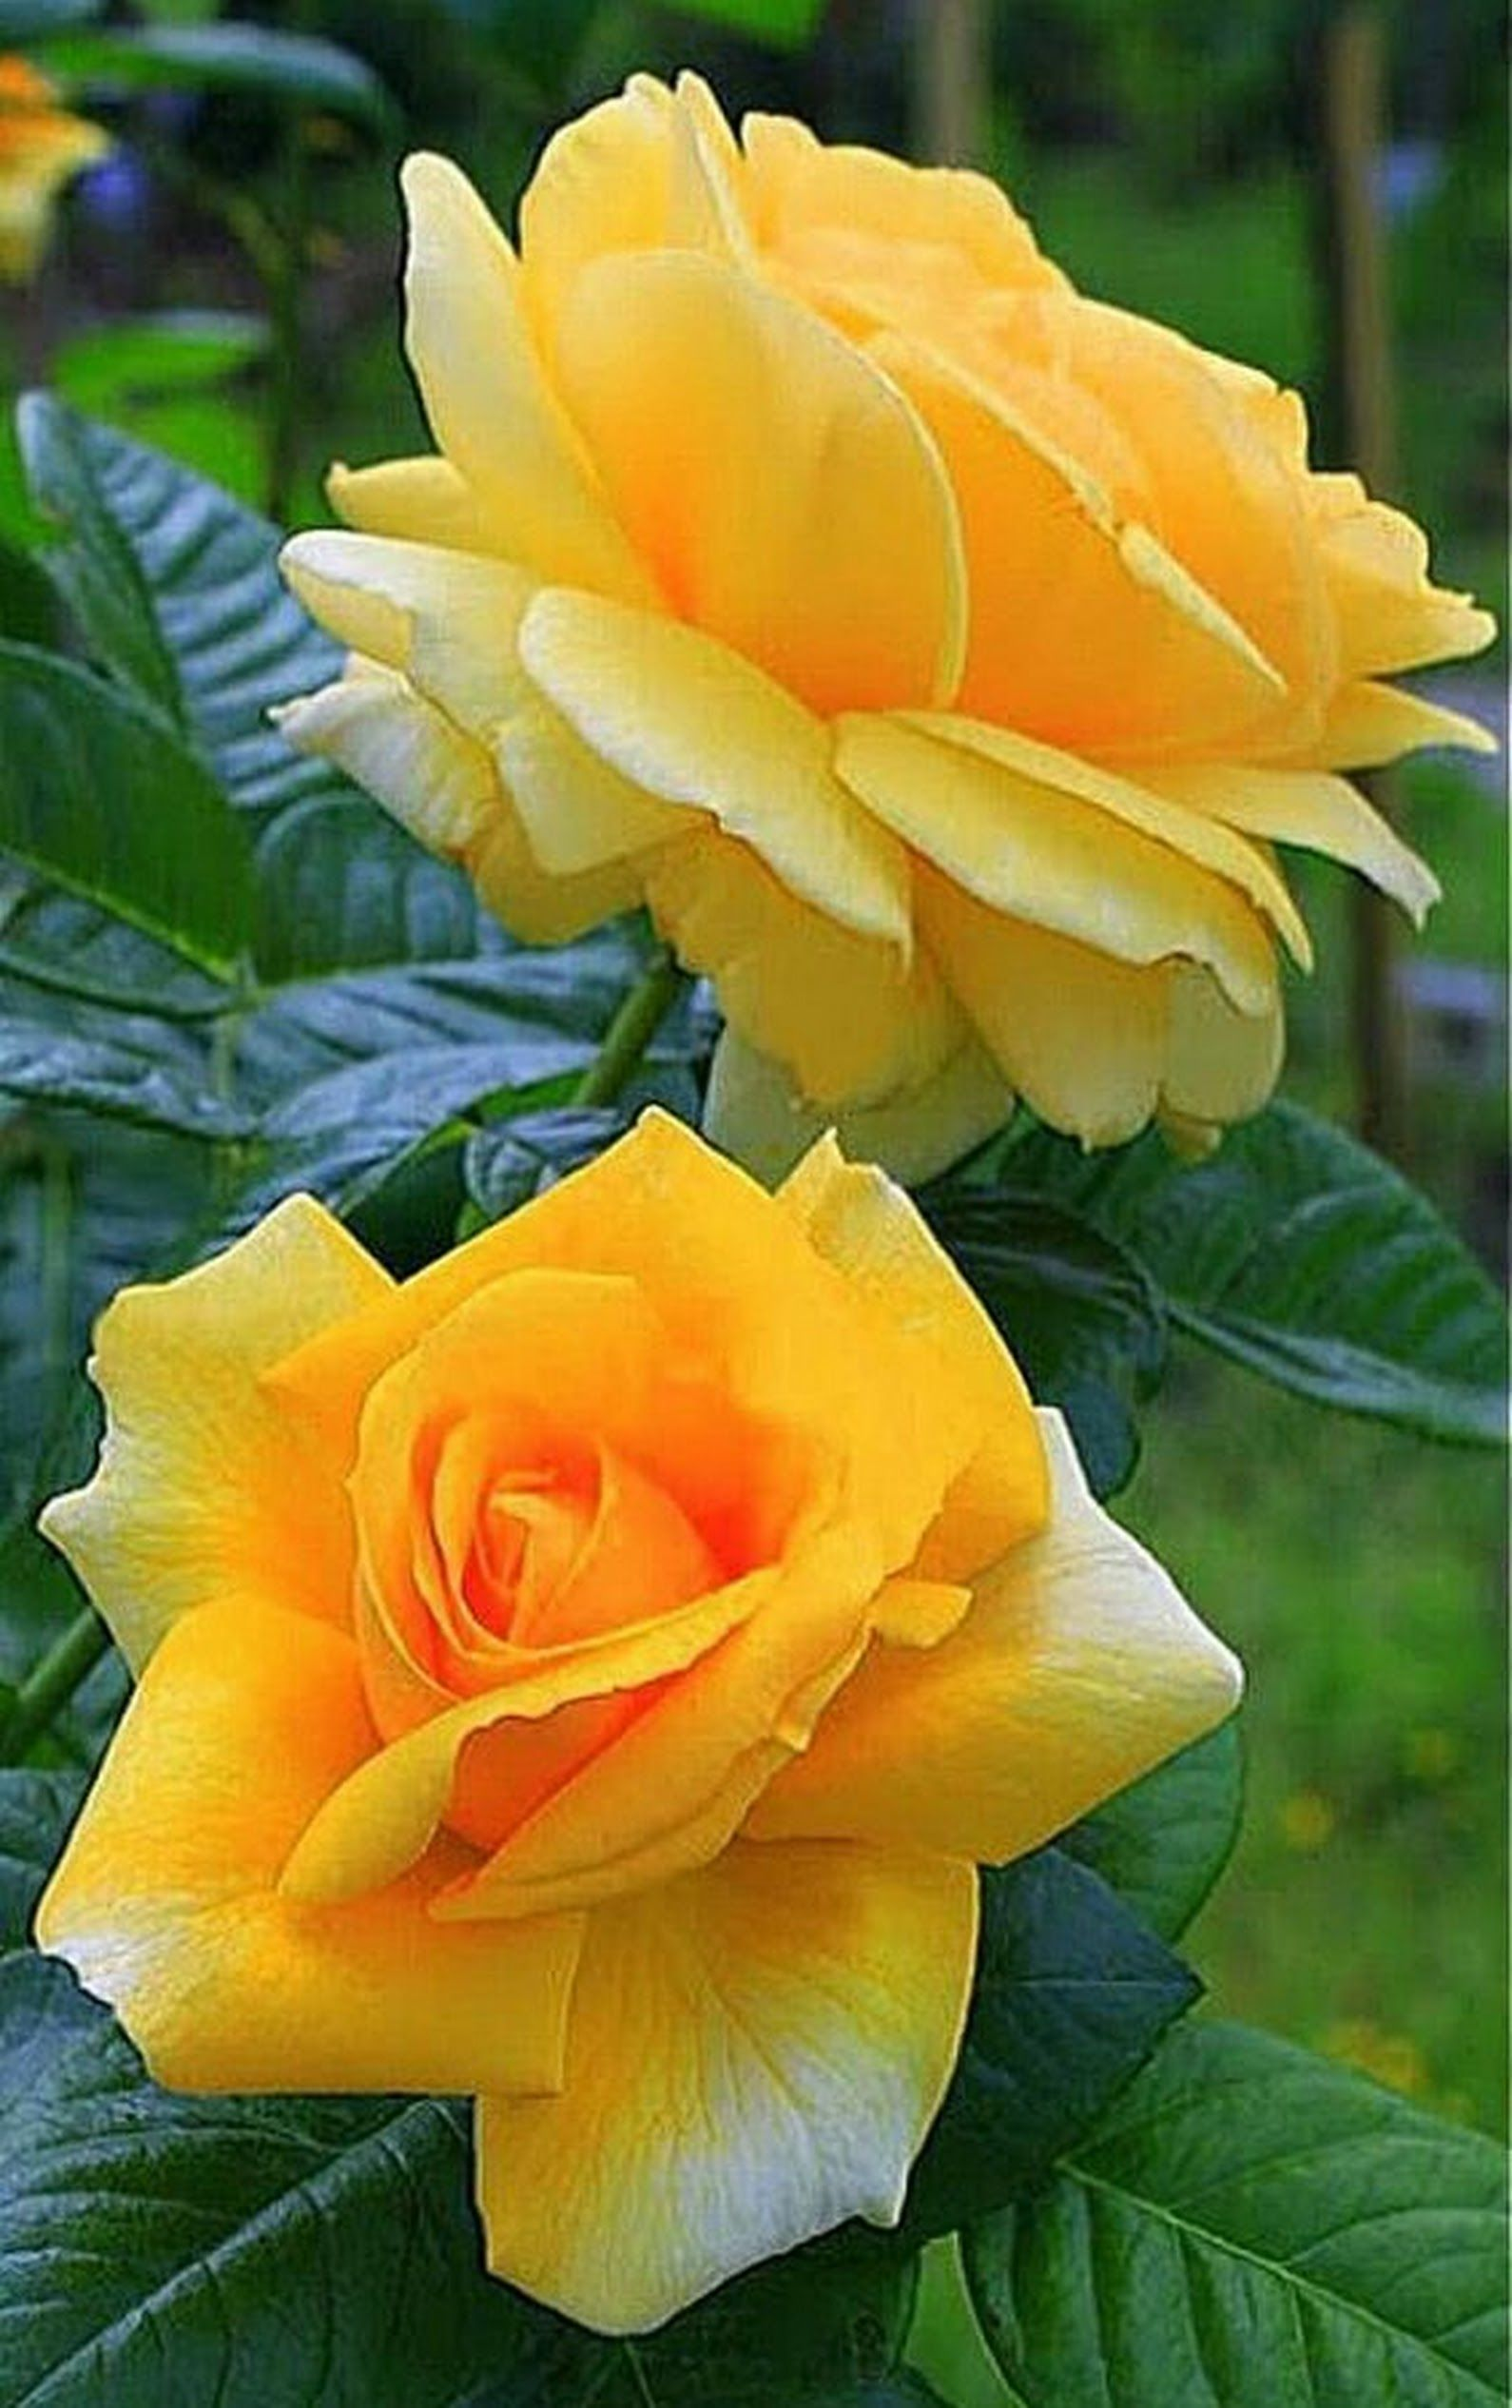 Pin By Ceina H On Roses Pinterest Flowers Rose And Flower